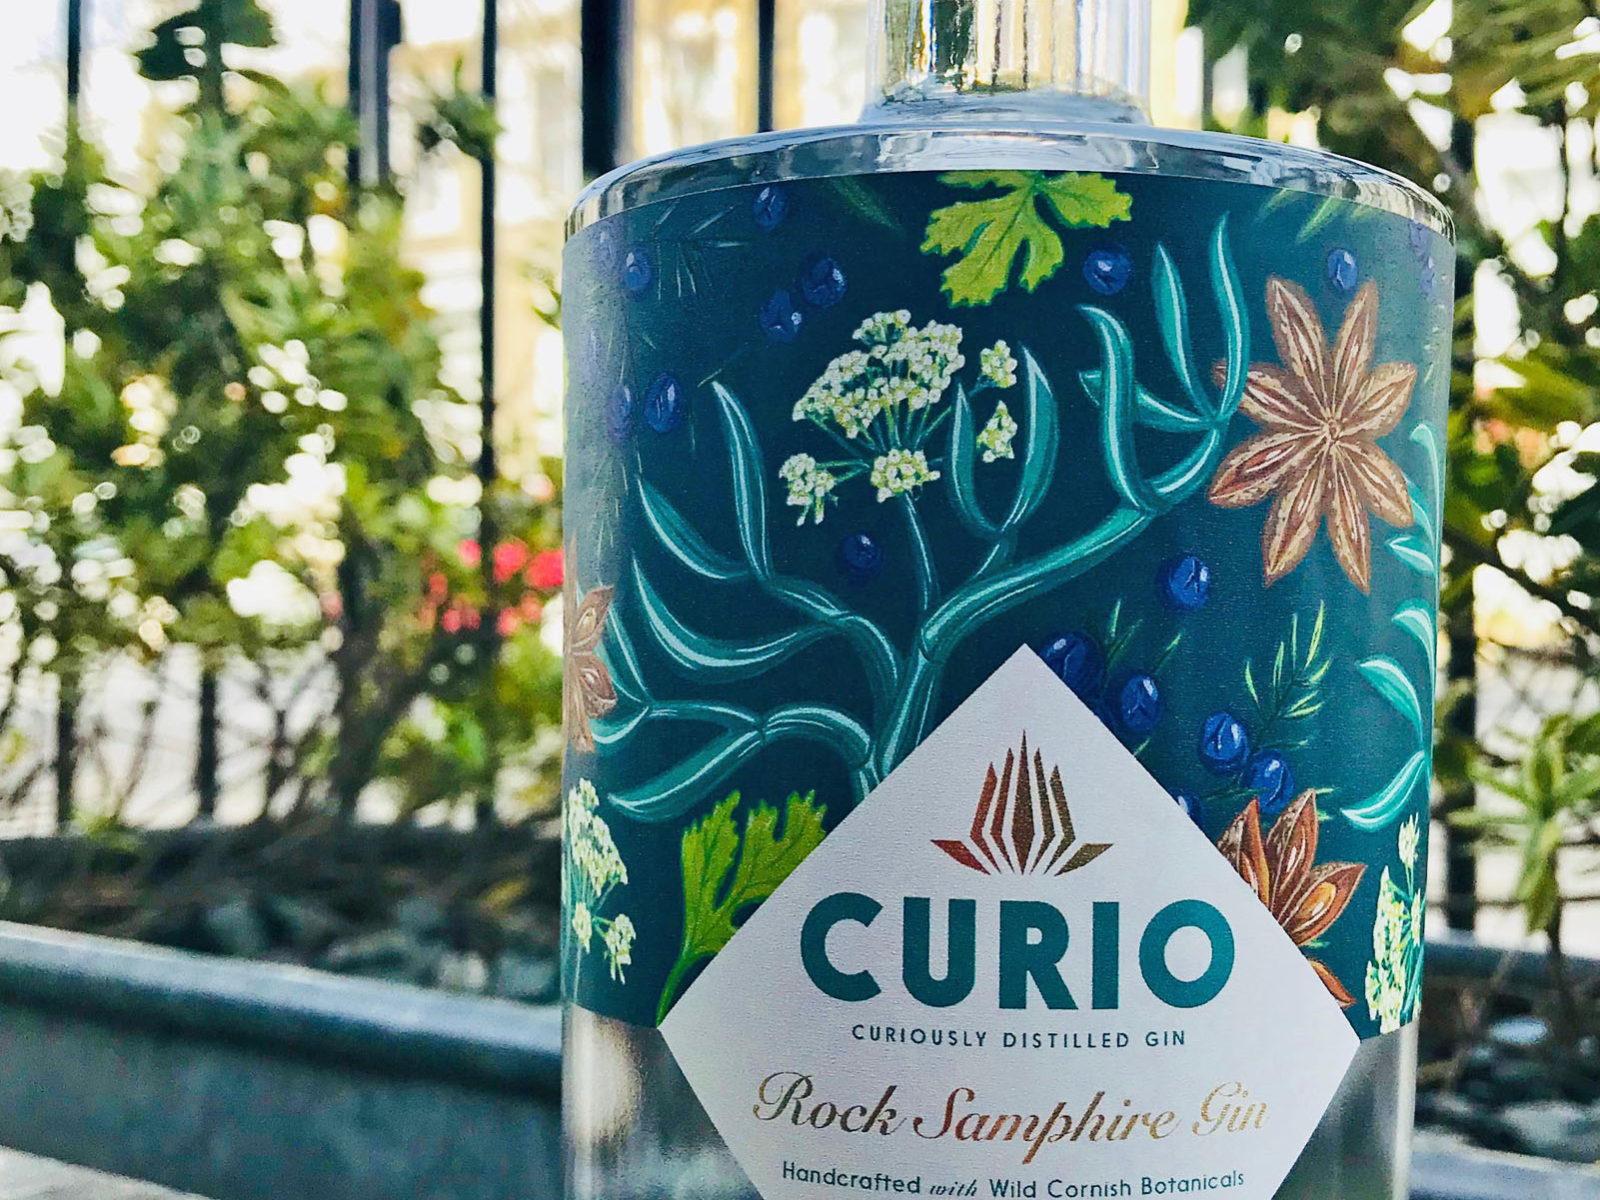 We love Curio's Rock Samphire Gin